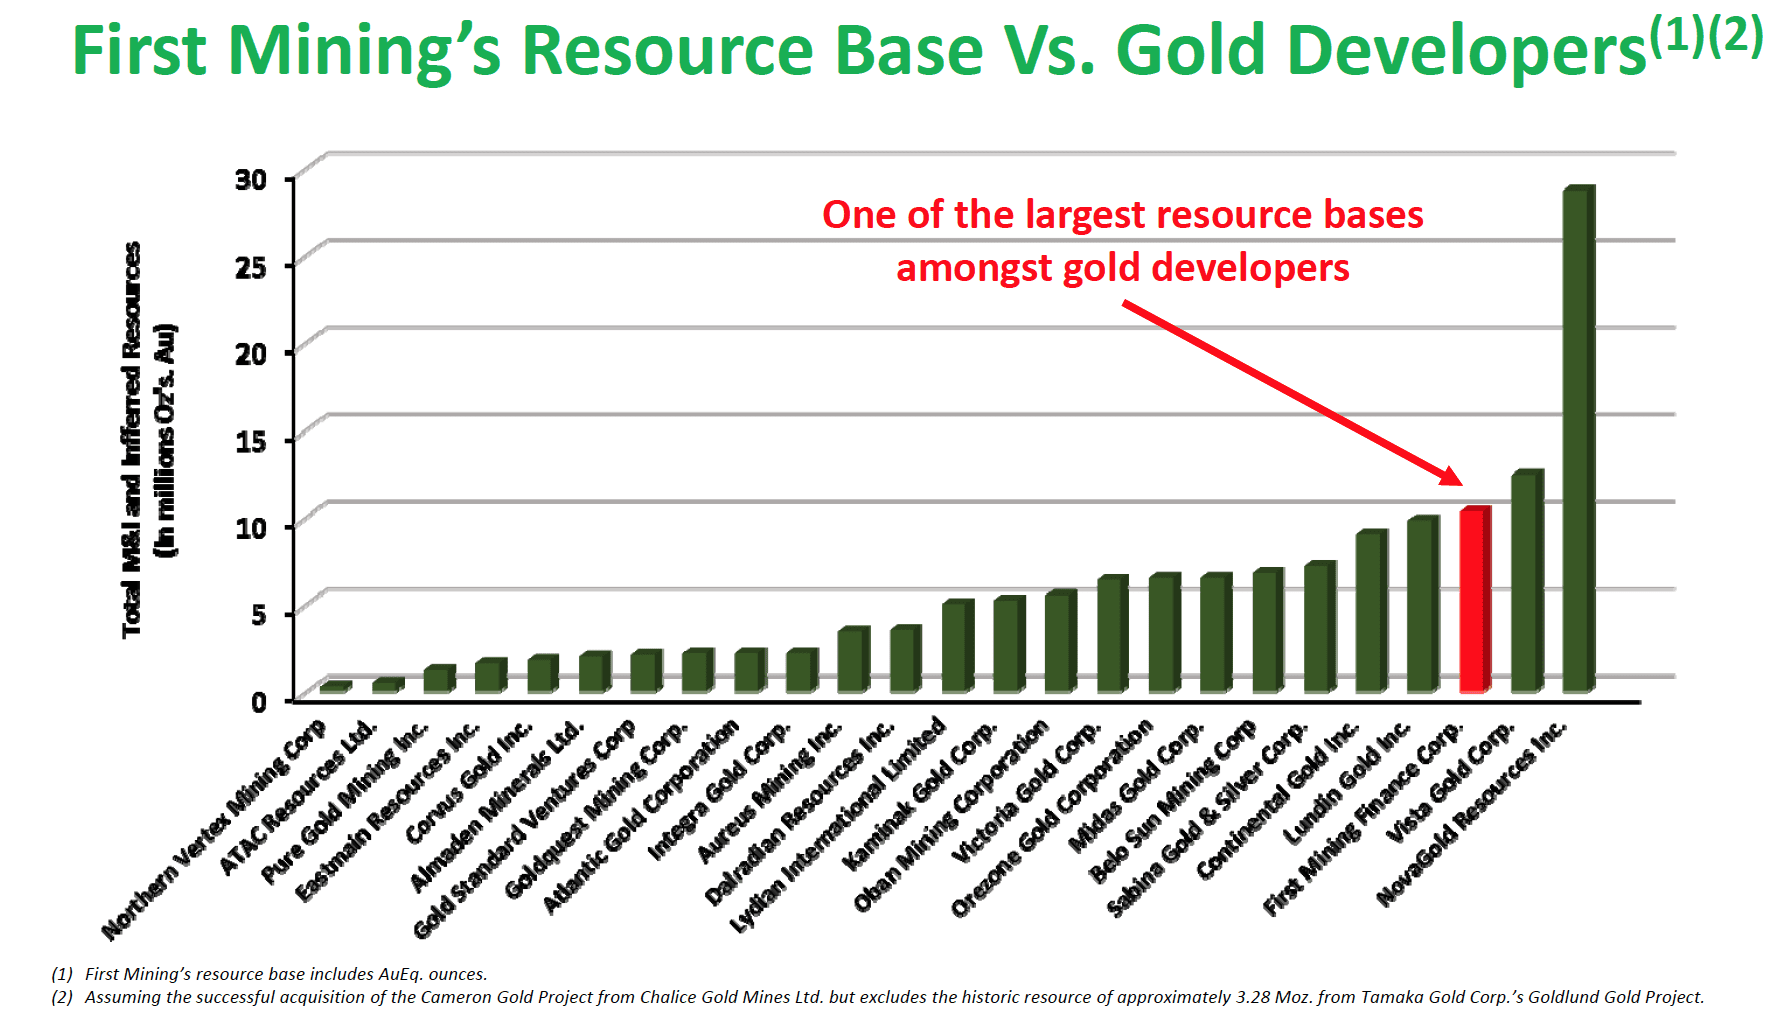 First Mining Resource Base - Gold Developers